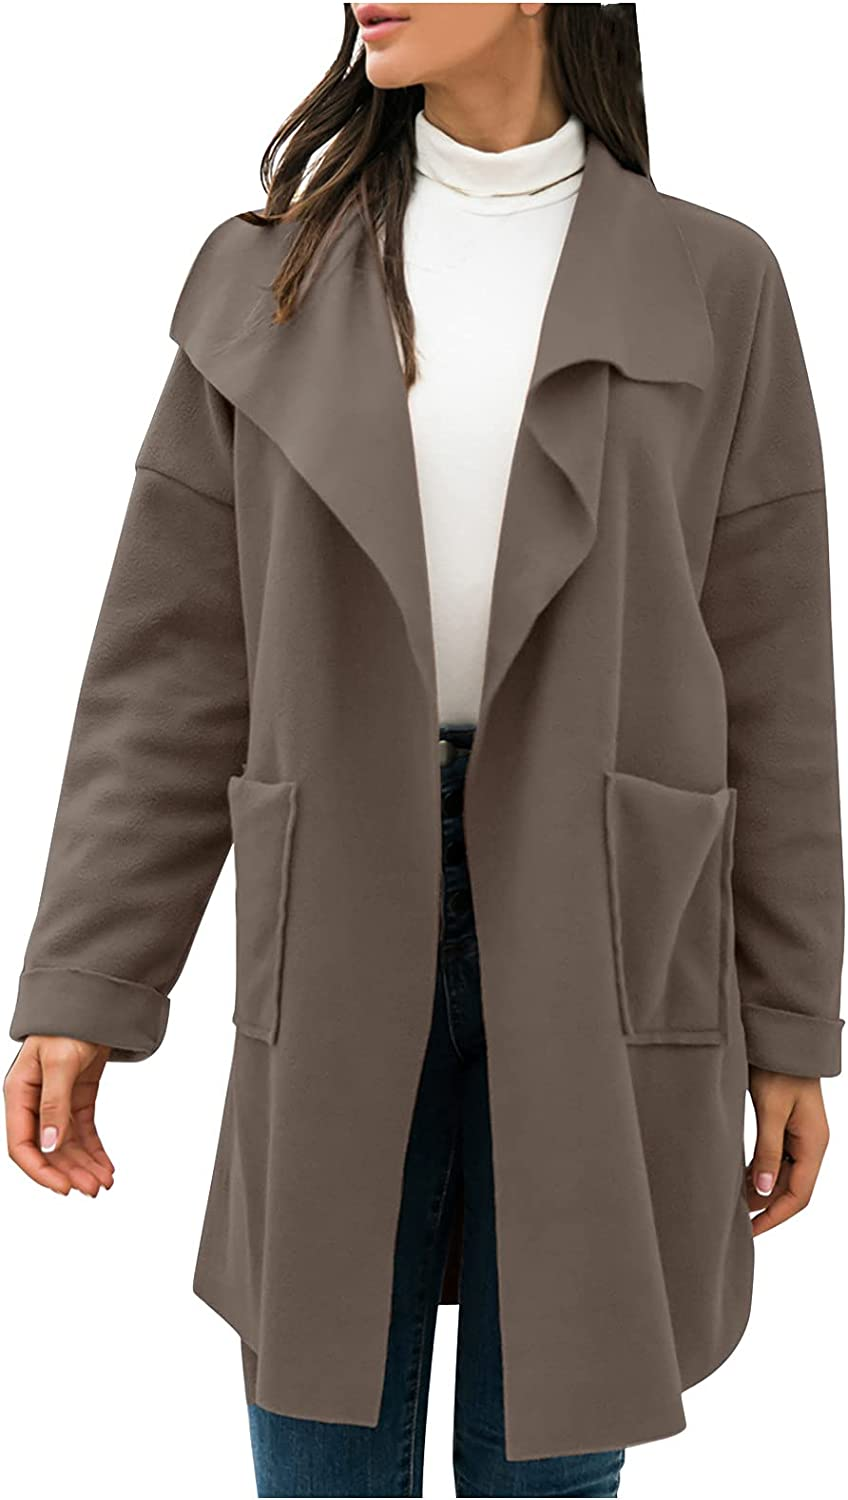 Women's Waterfall Collar Long Sleeve Wrap Trench Coat Cardigan Loose Fit Pockets Wool Blend Solid Outerwear